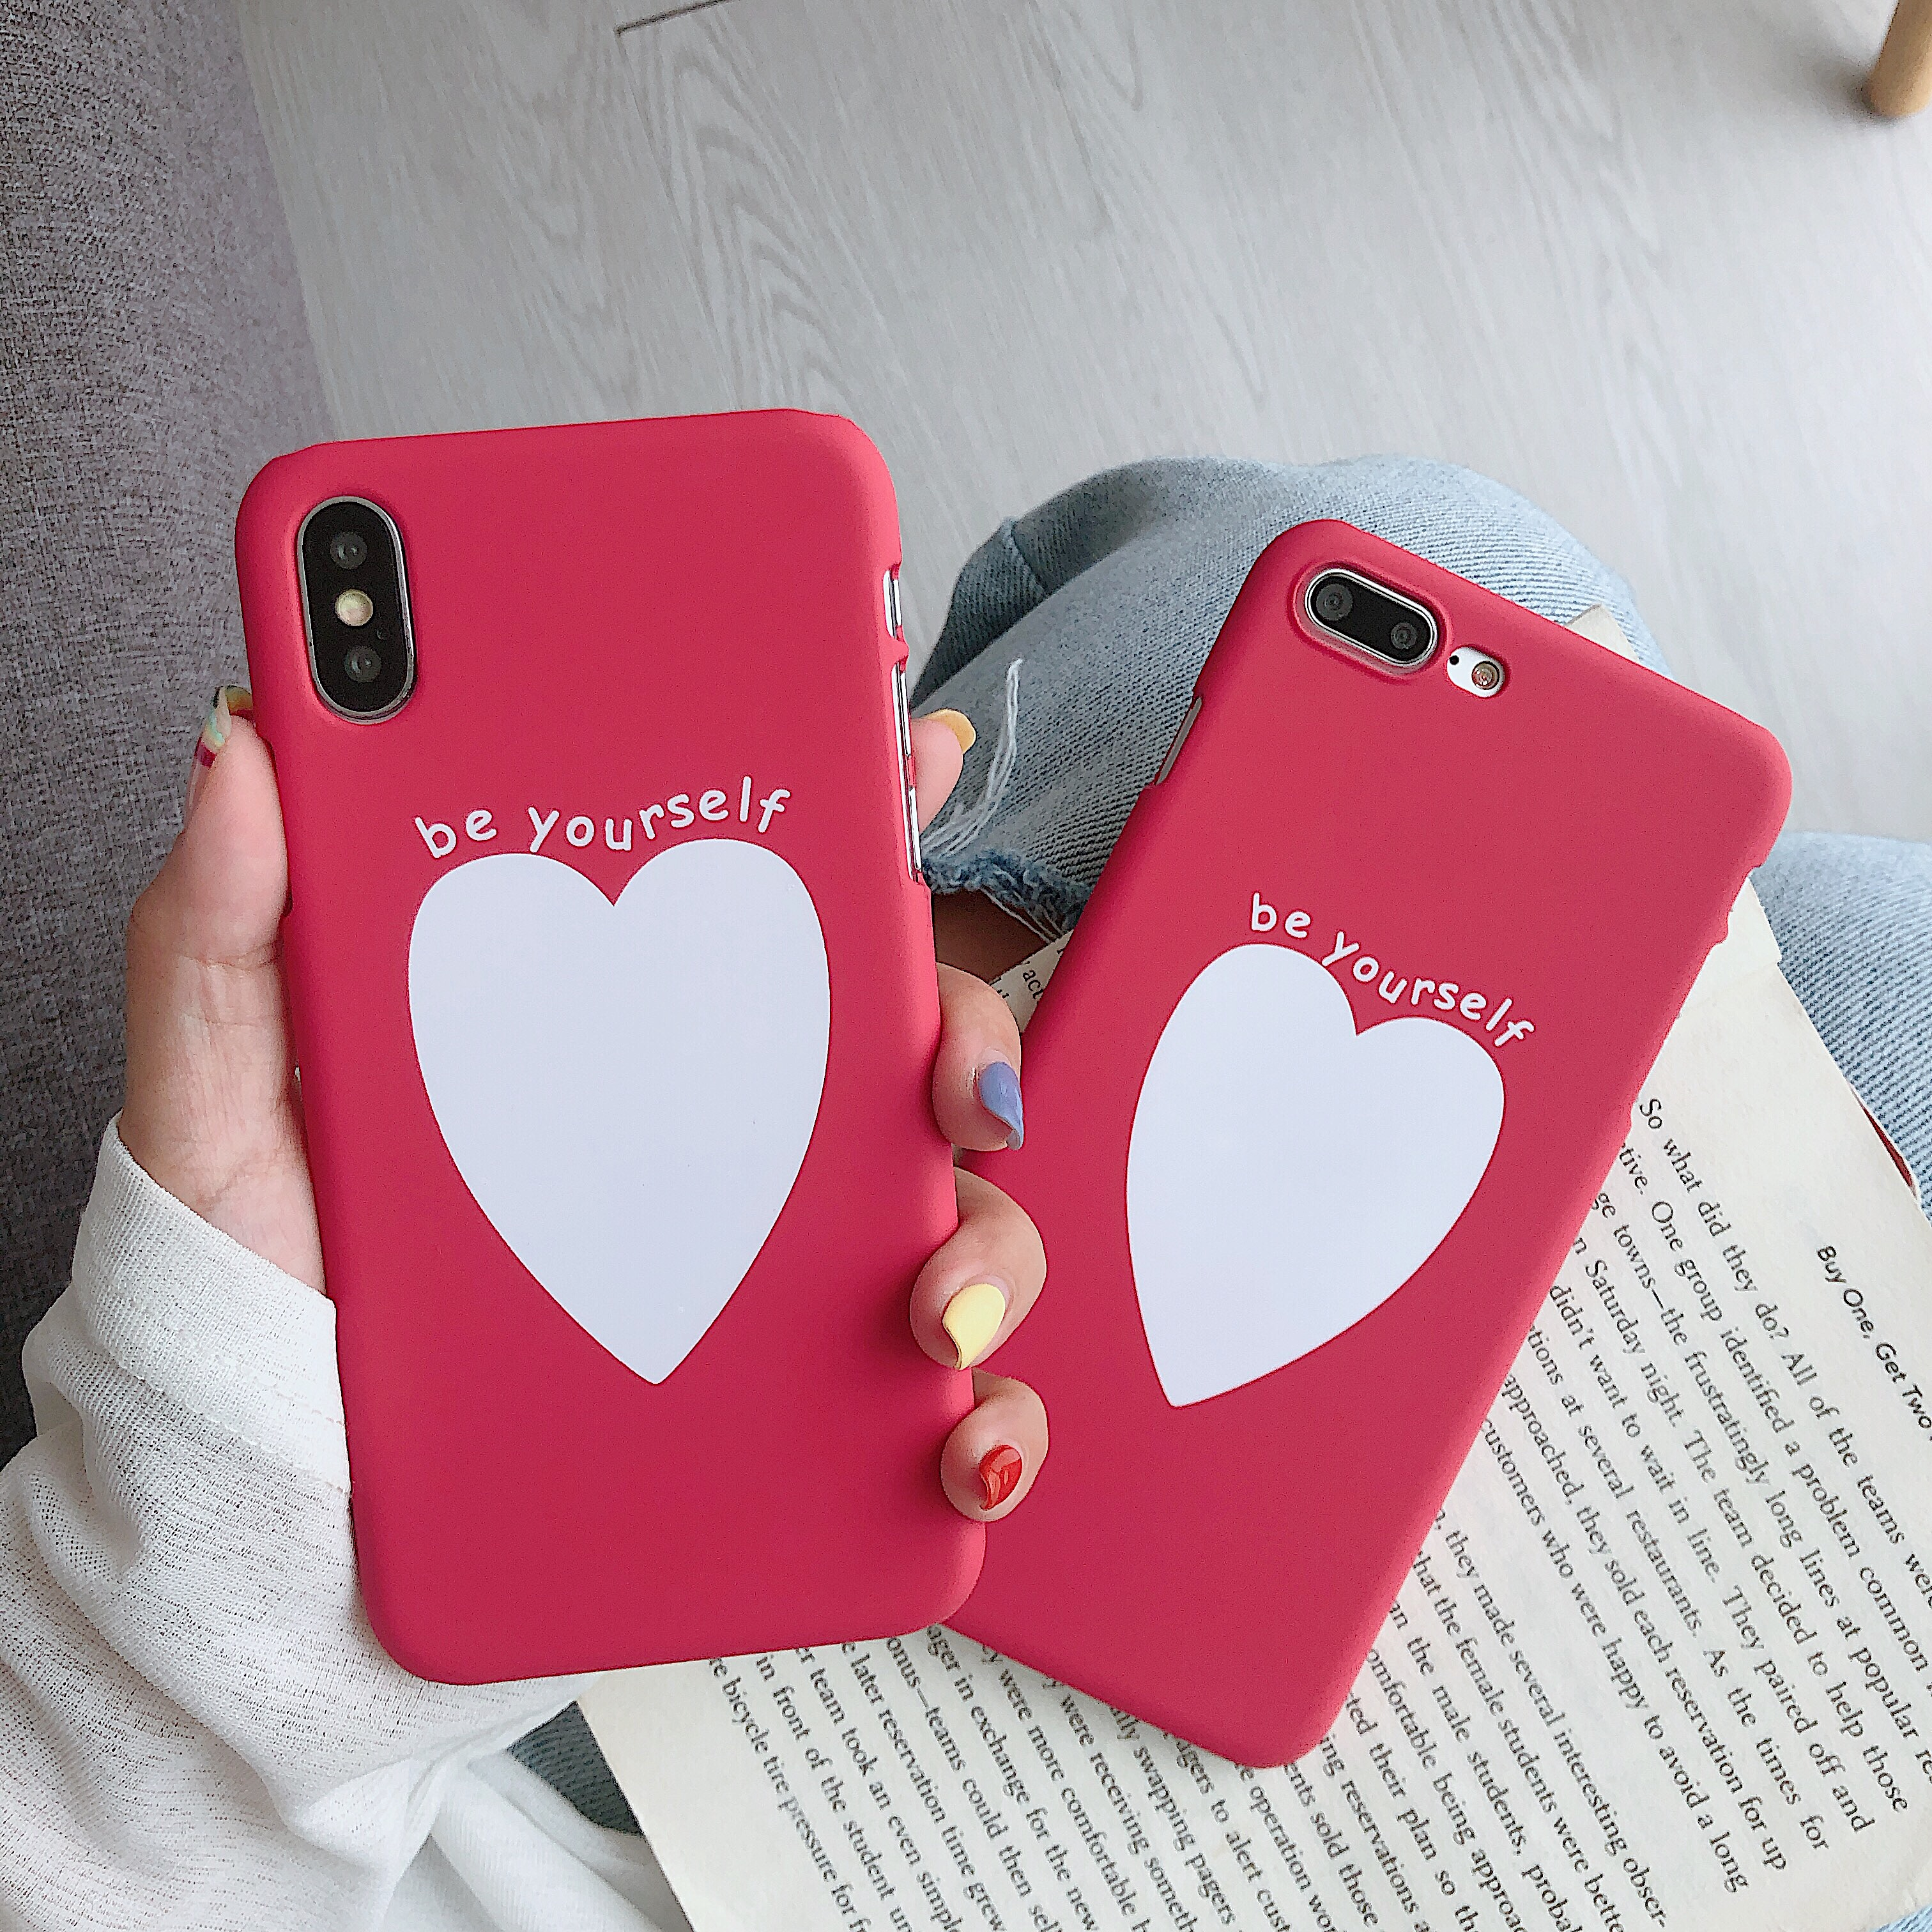 Phone Bag Case Accessories For iPhone X XR XS MAX 6 6s 7 8Plus Luxury Couple Love Heart Eyes Print Fashion Back Cover Capa Coque-in Half-wrapped Cases from Cellphones & Telecommunications